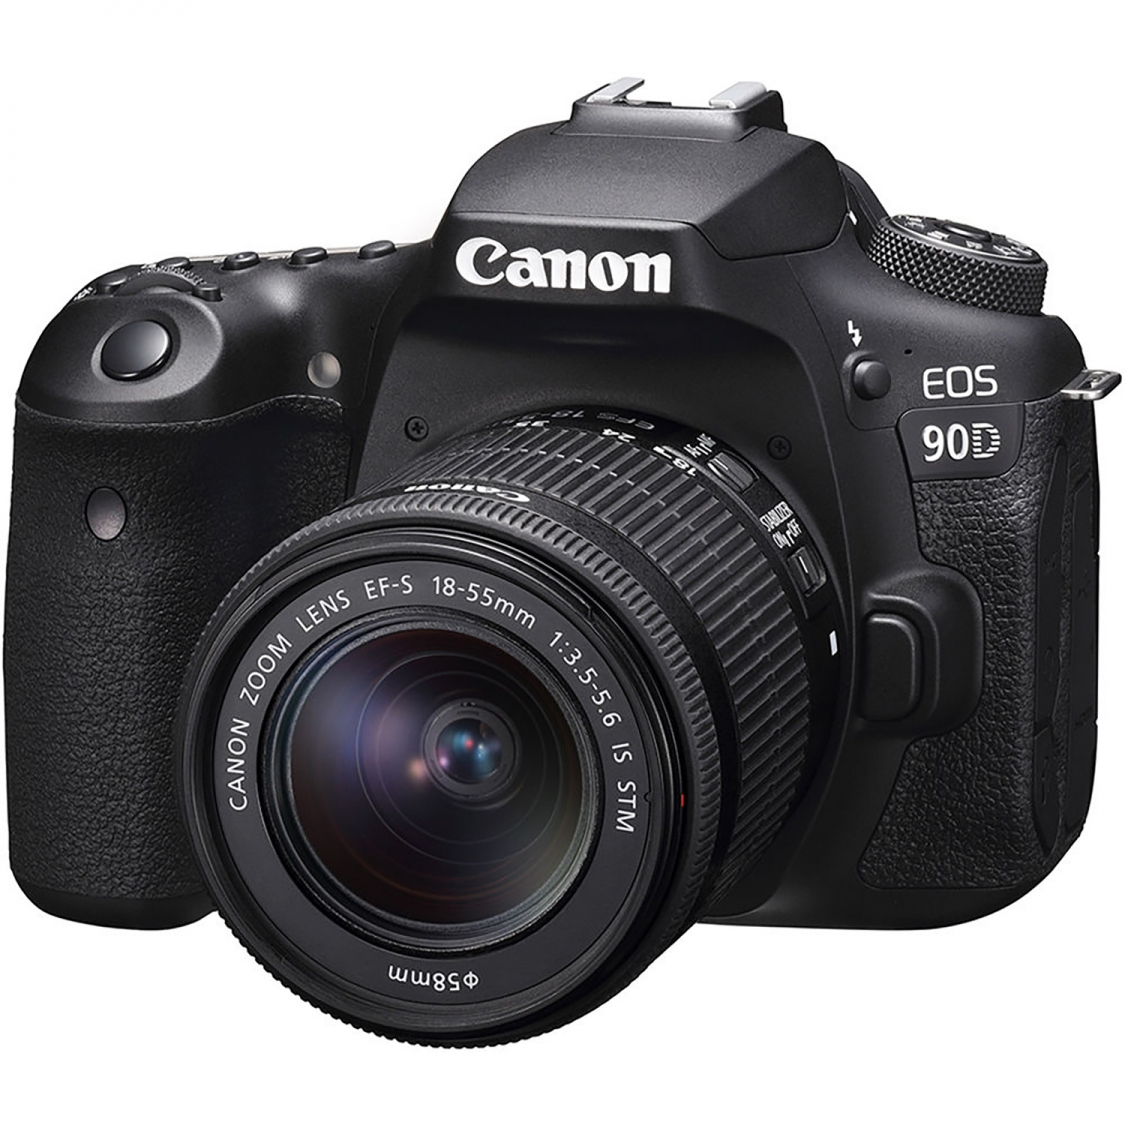 Canon EOS 90D DSLR and 18-55mm IS STM Lens